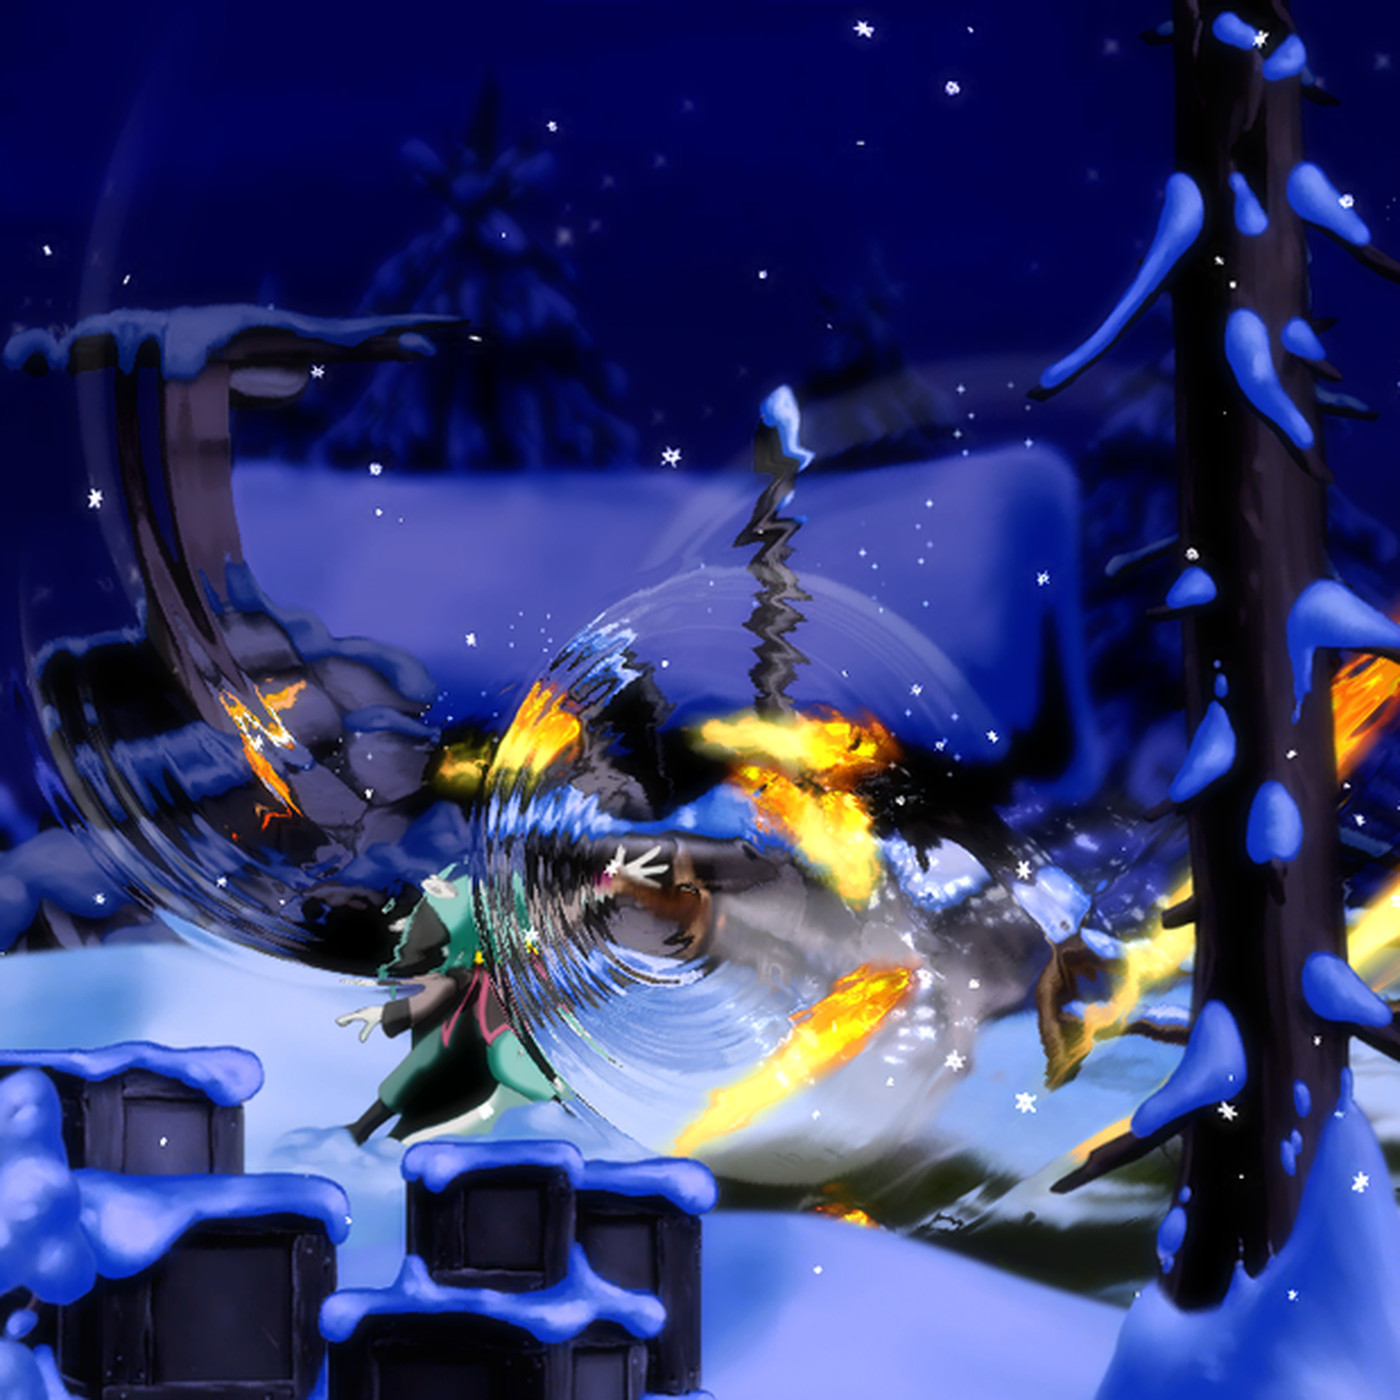 Dust An Elysian Tail Is Coming To Steam Developer Hoping For